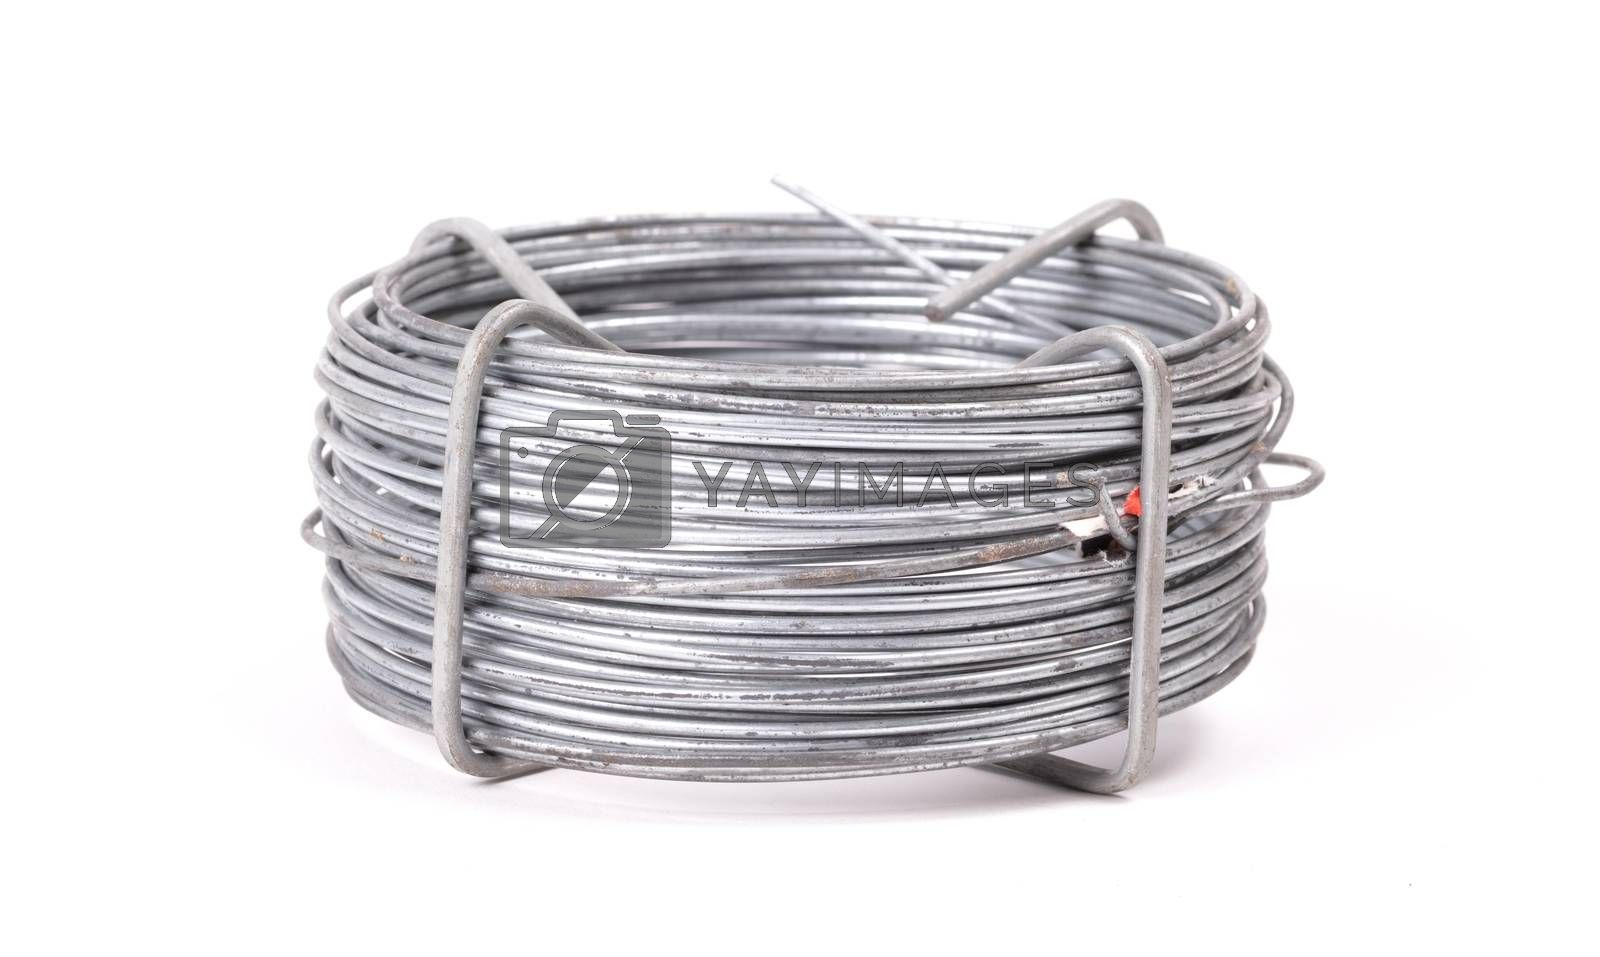 Roll of metal wire, vintage, isolated on white